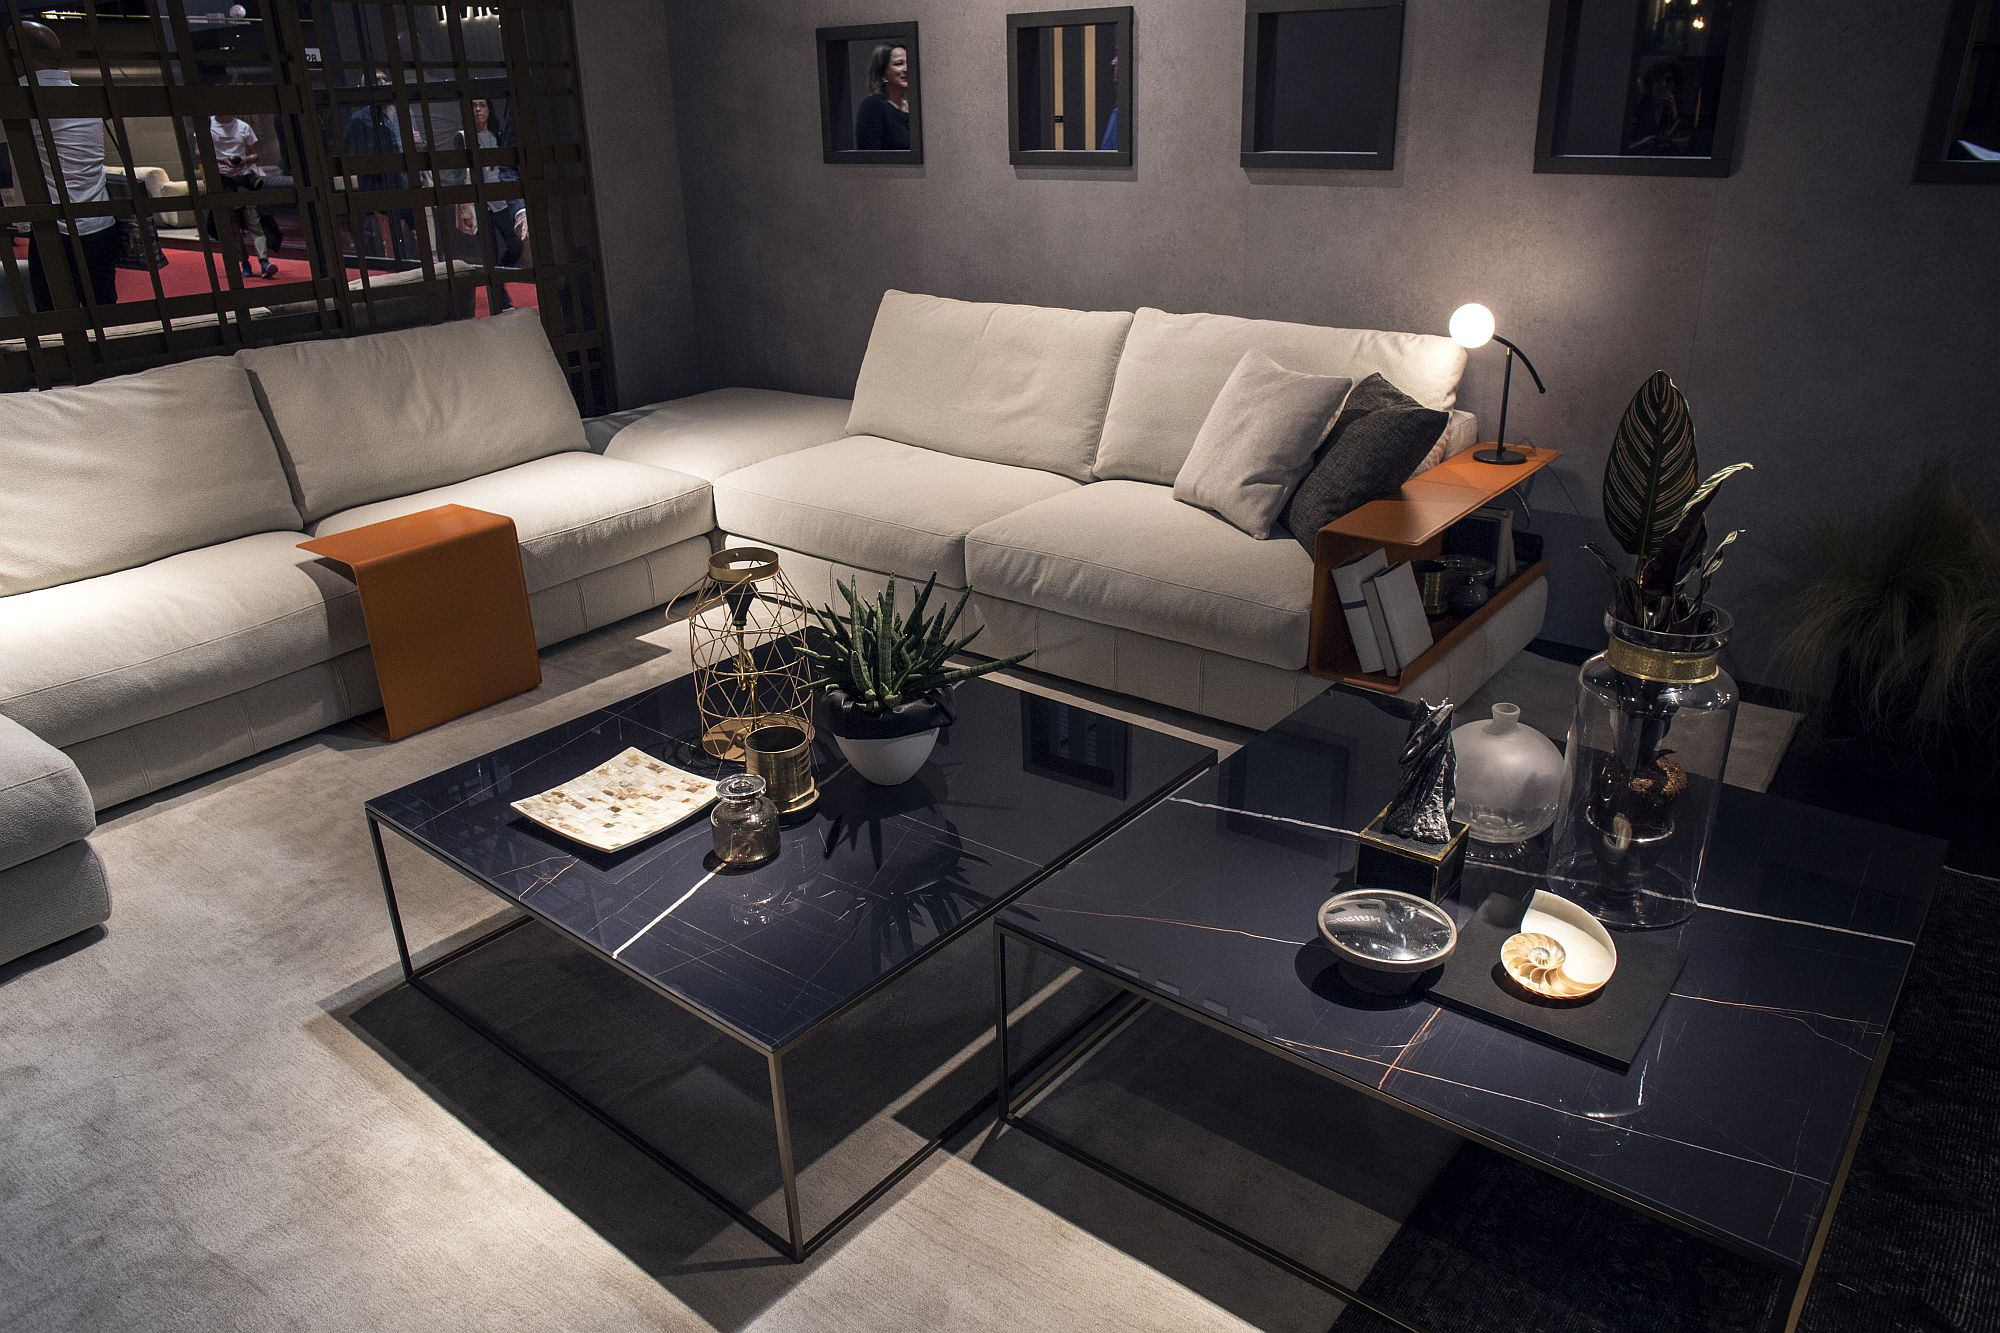 Simple orange additions at the end of the couch hold drinks while offering display space